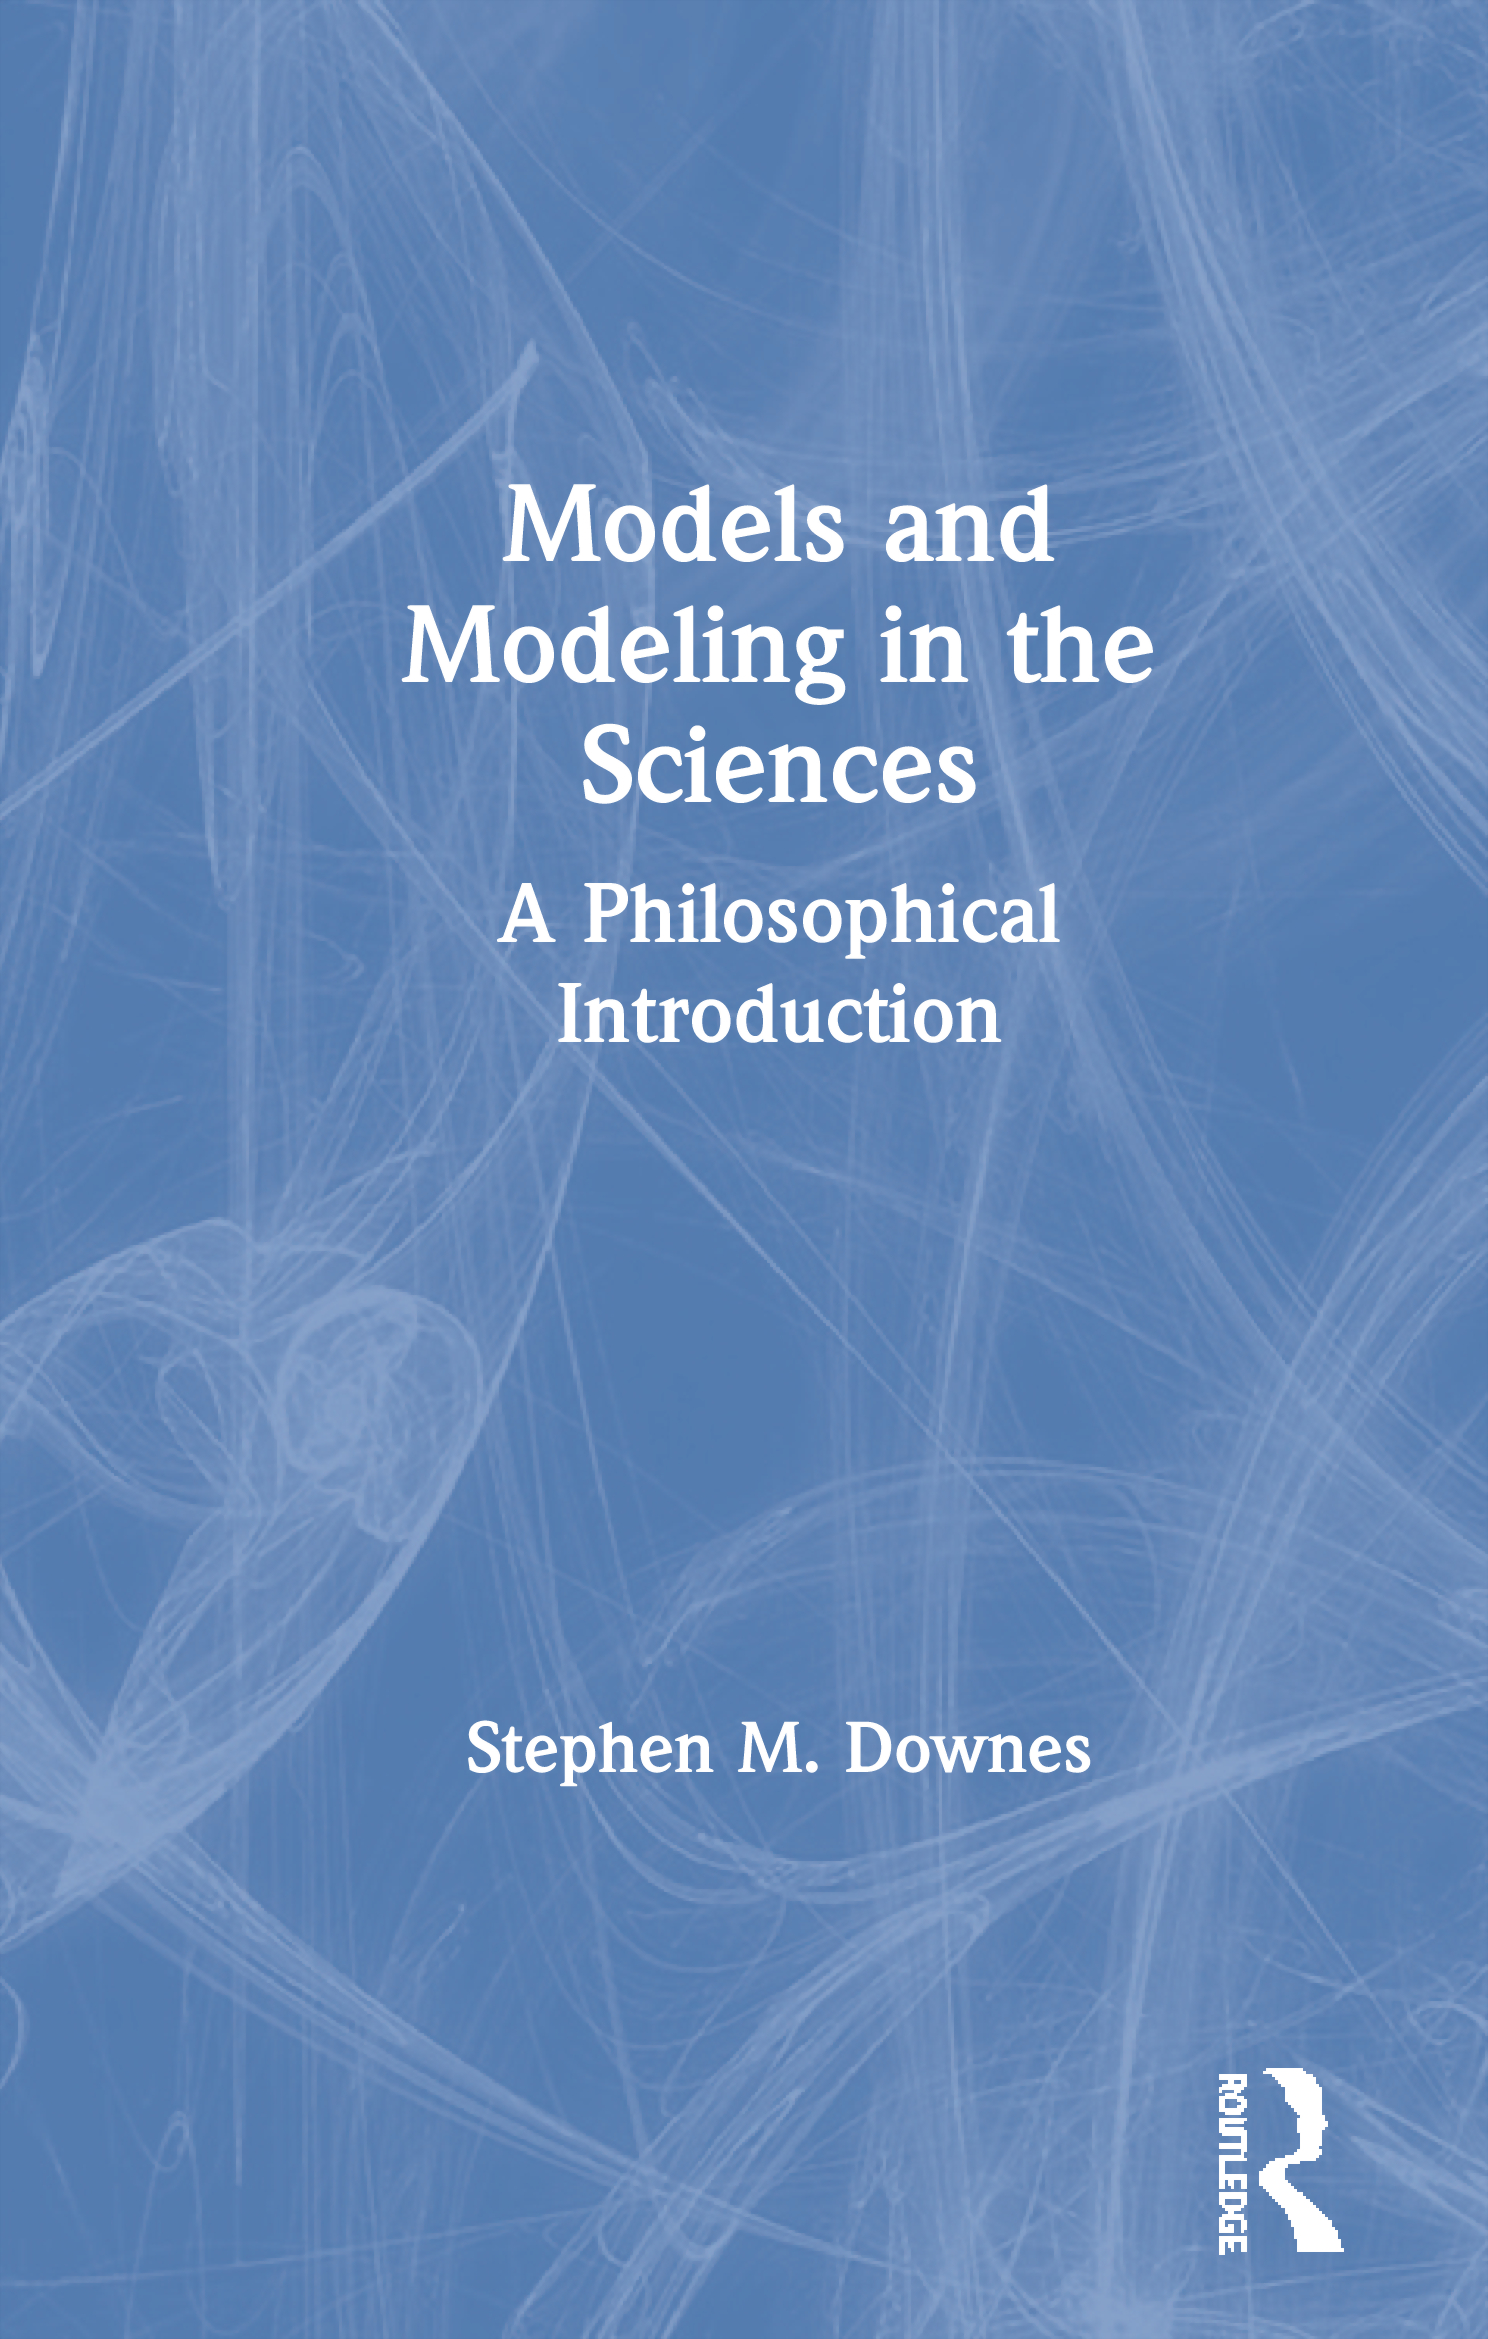 Models and Modelling in the Sciences: A Philosophical Introduction book cover